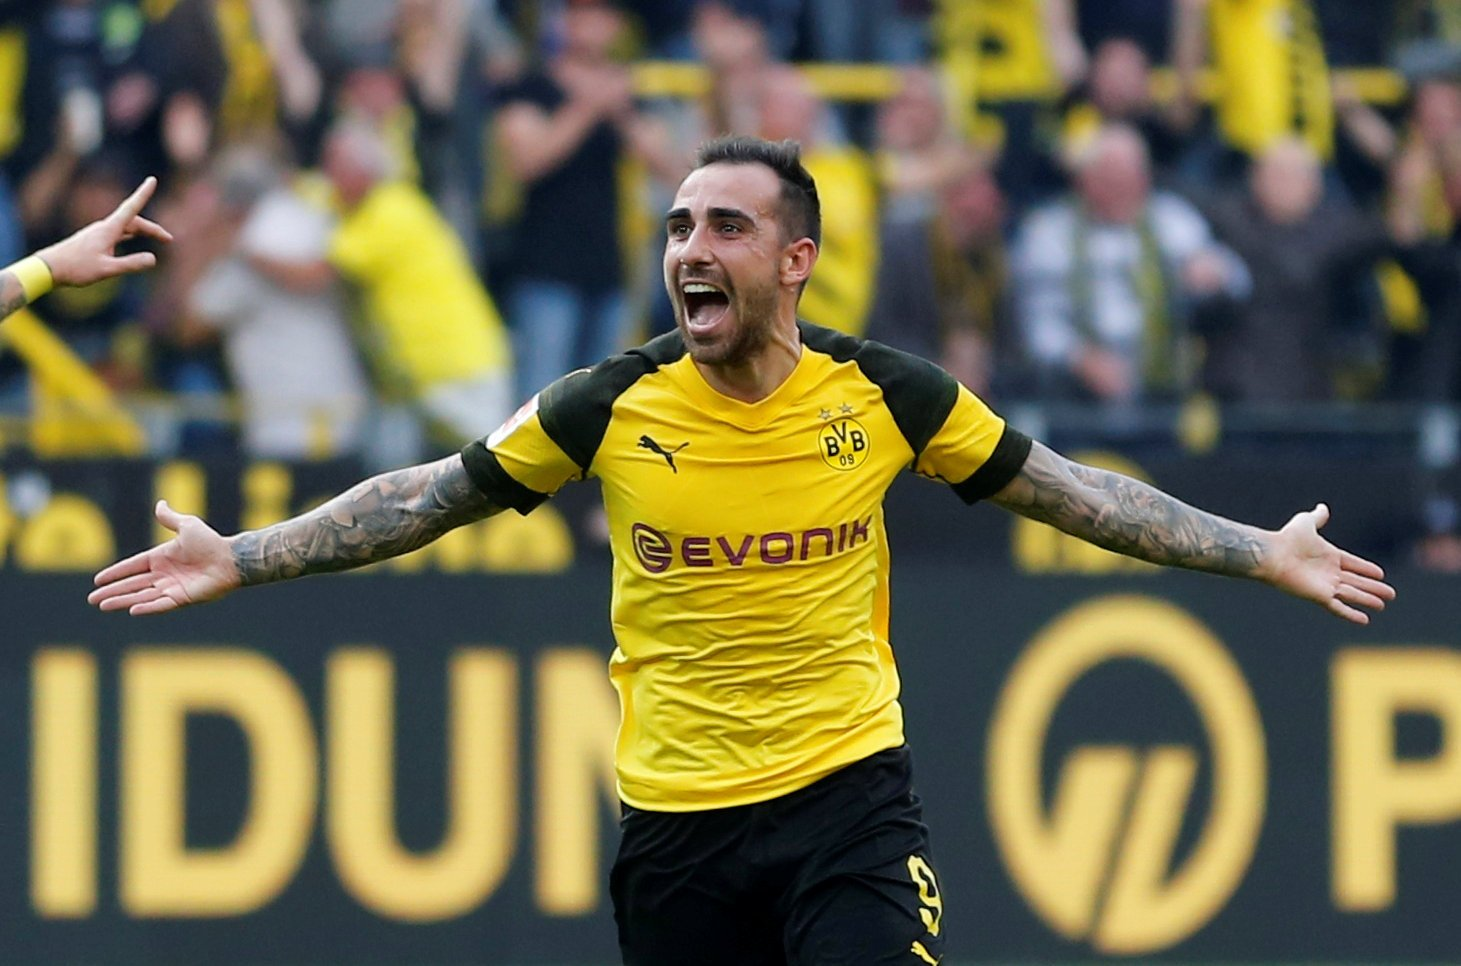 Alcacer is just perfect for a Tottenham Hotspur side looking to get better